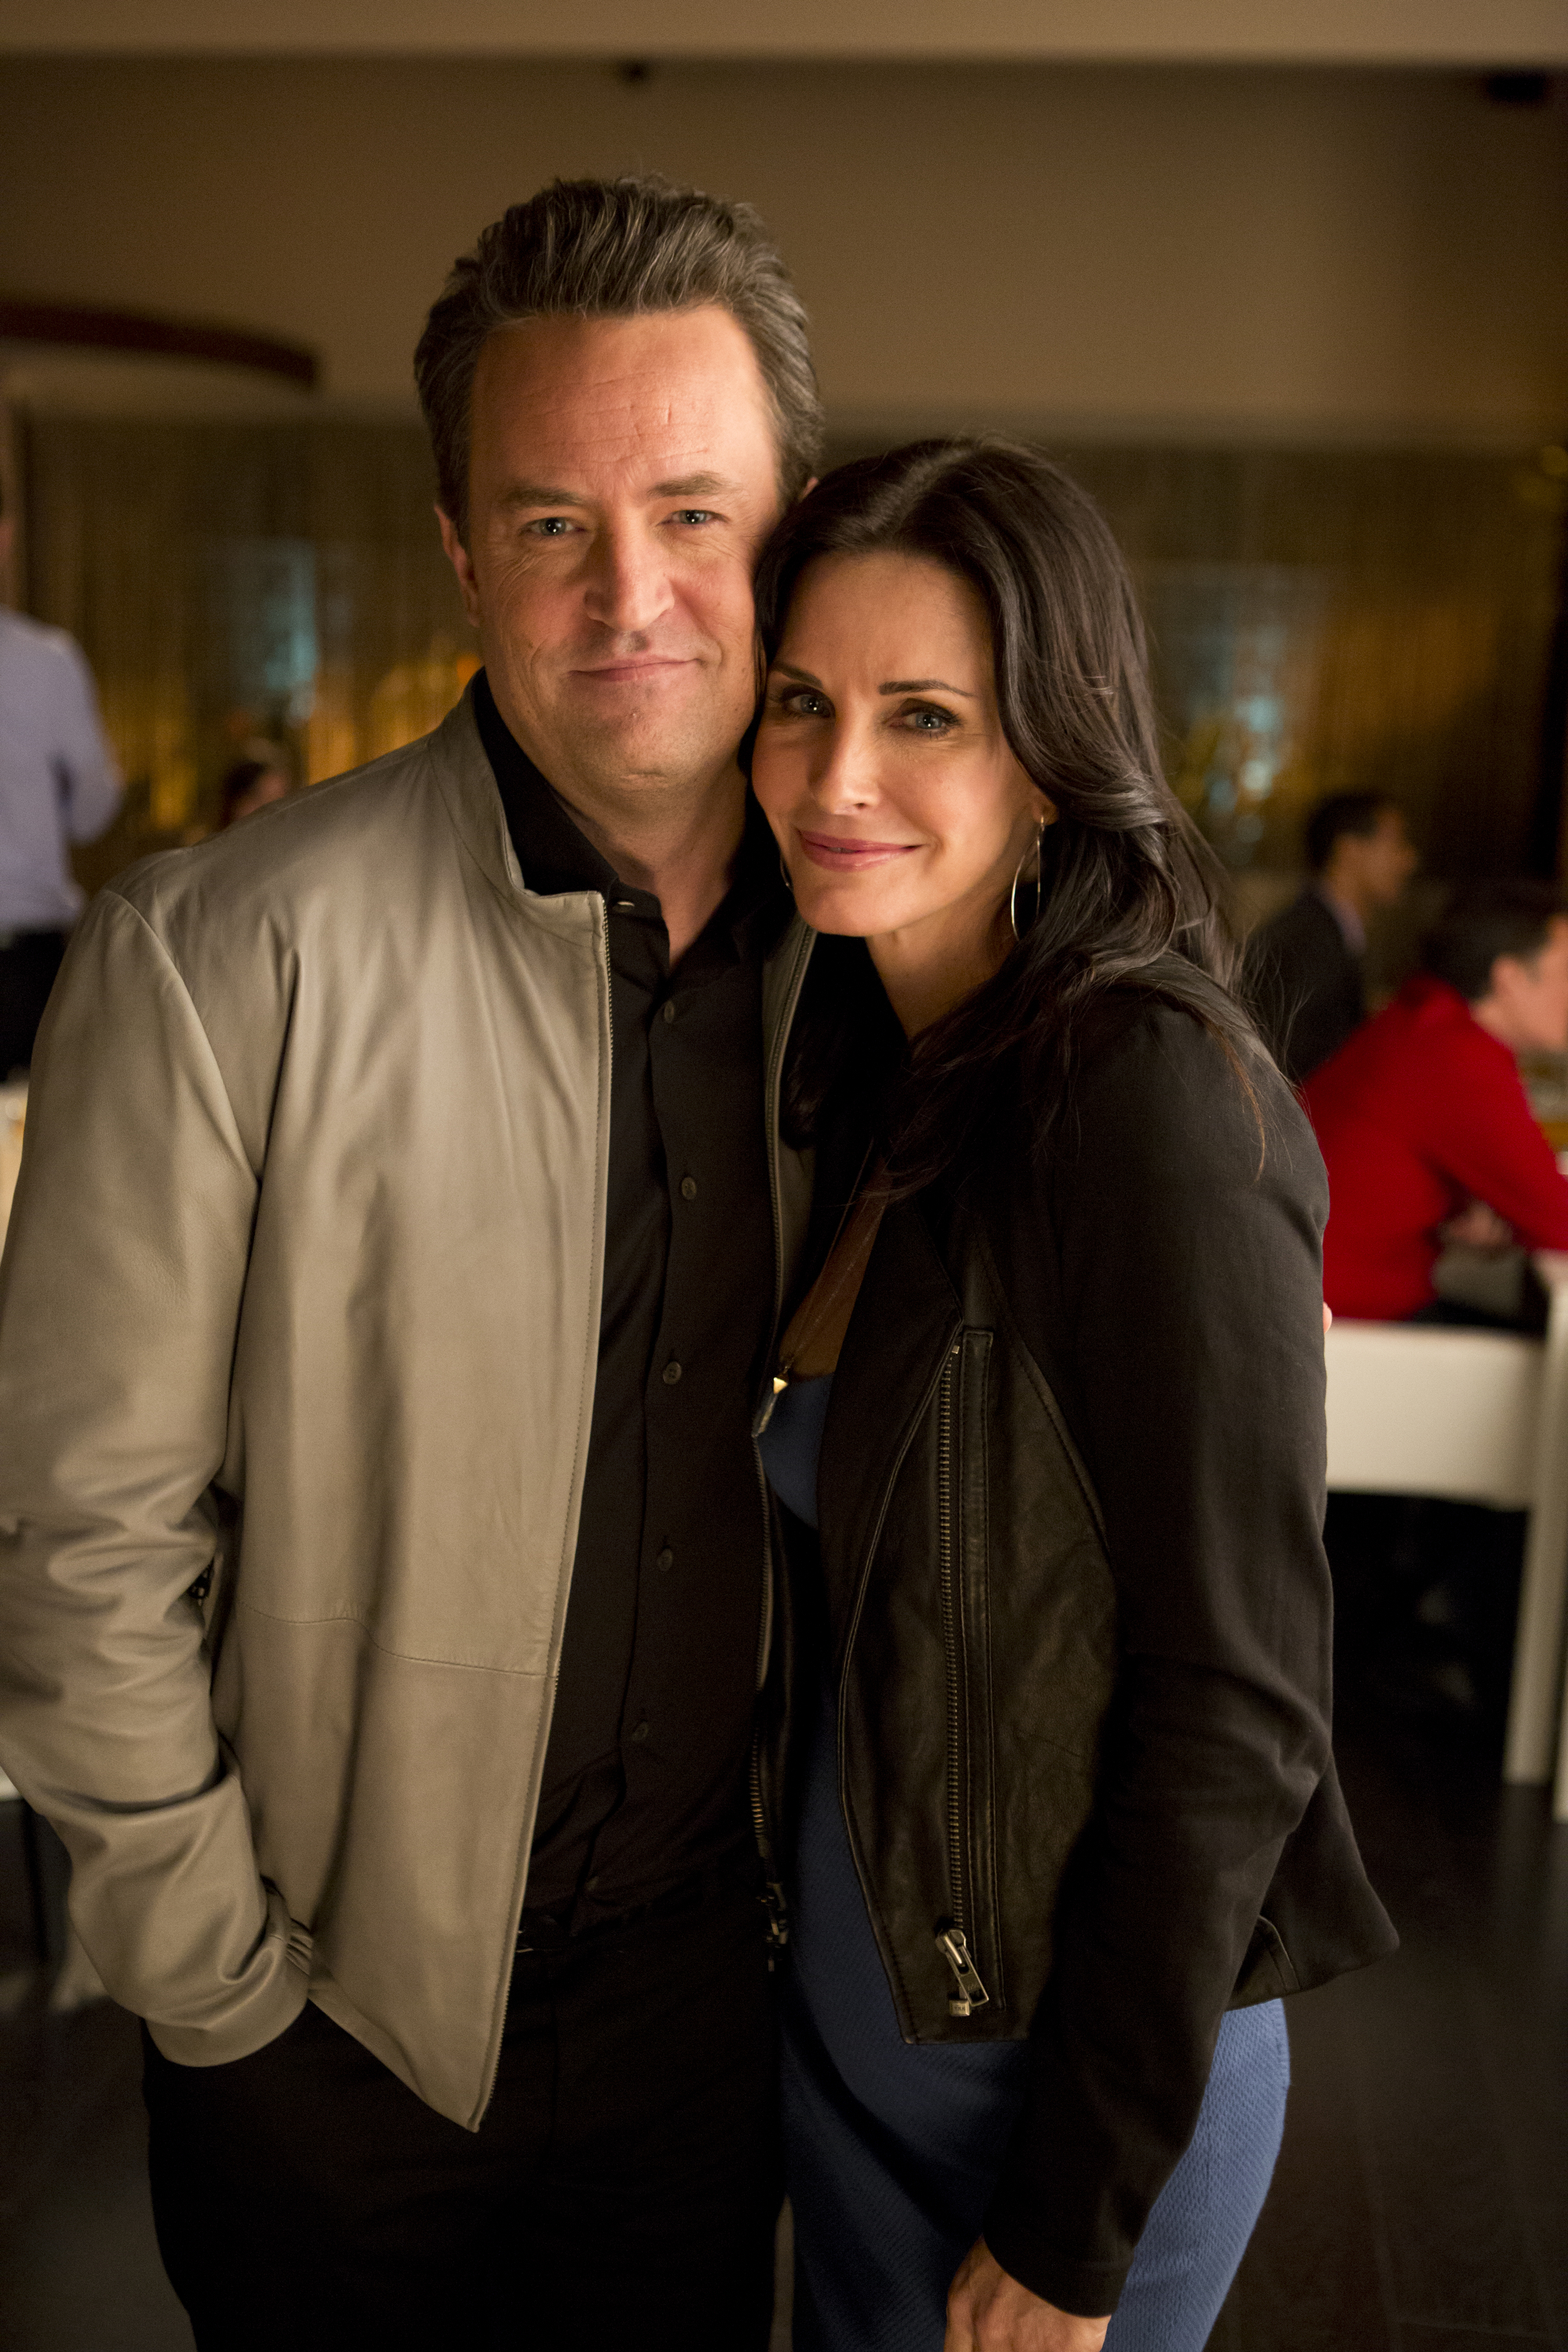 Friends reunion: Matthew Perry wants Courteney Cox on The ...